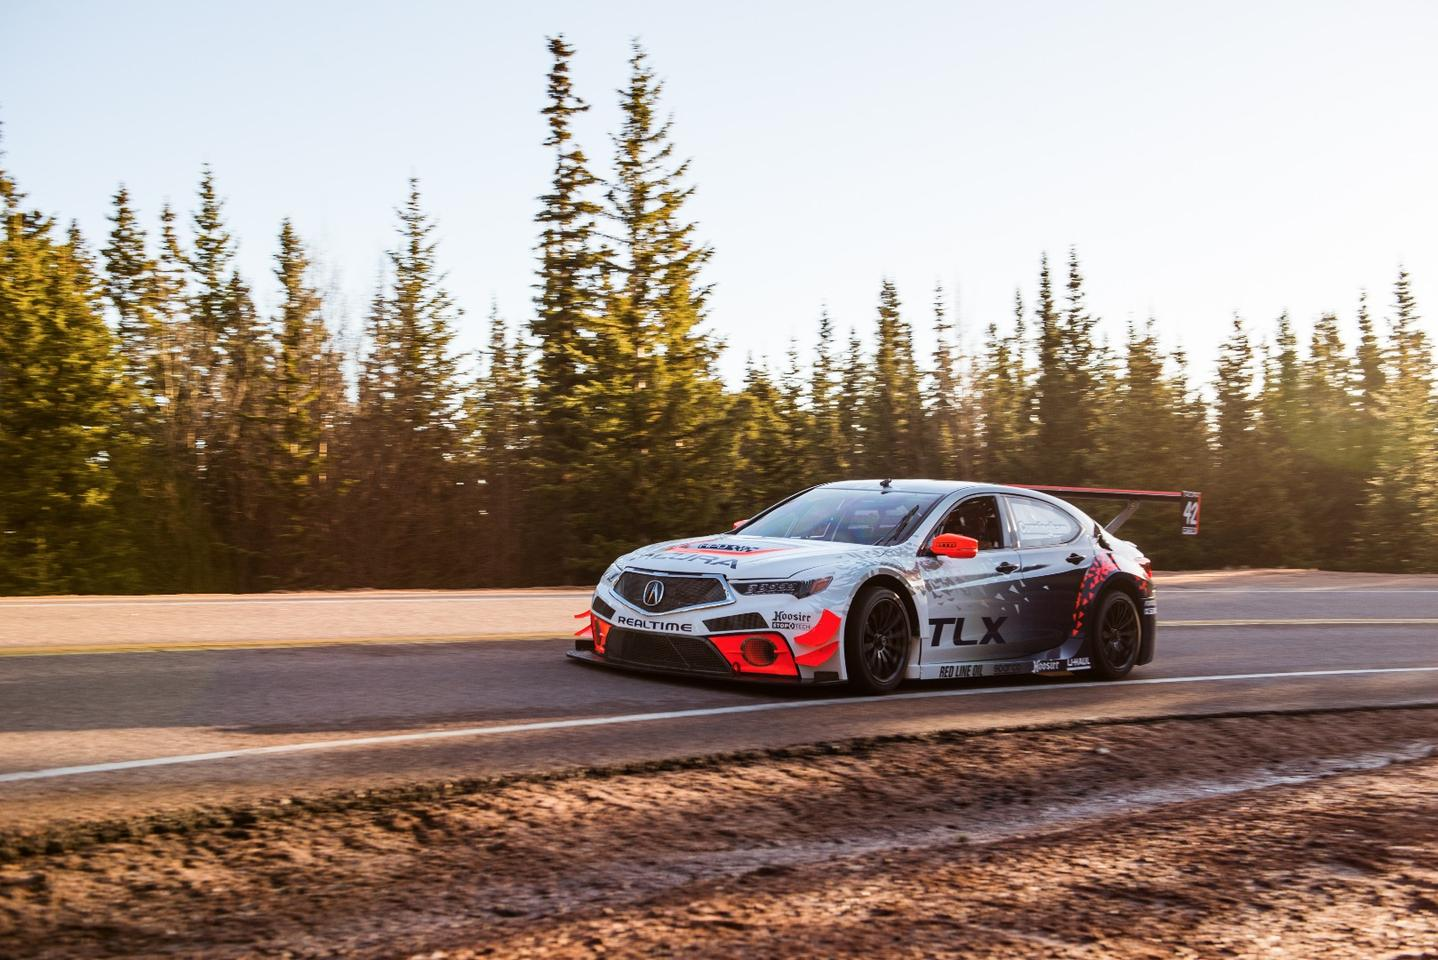 PeterCunningham's second-placed Acura TLX